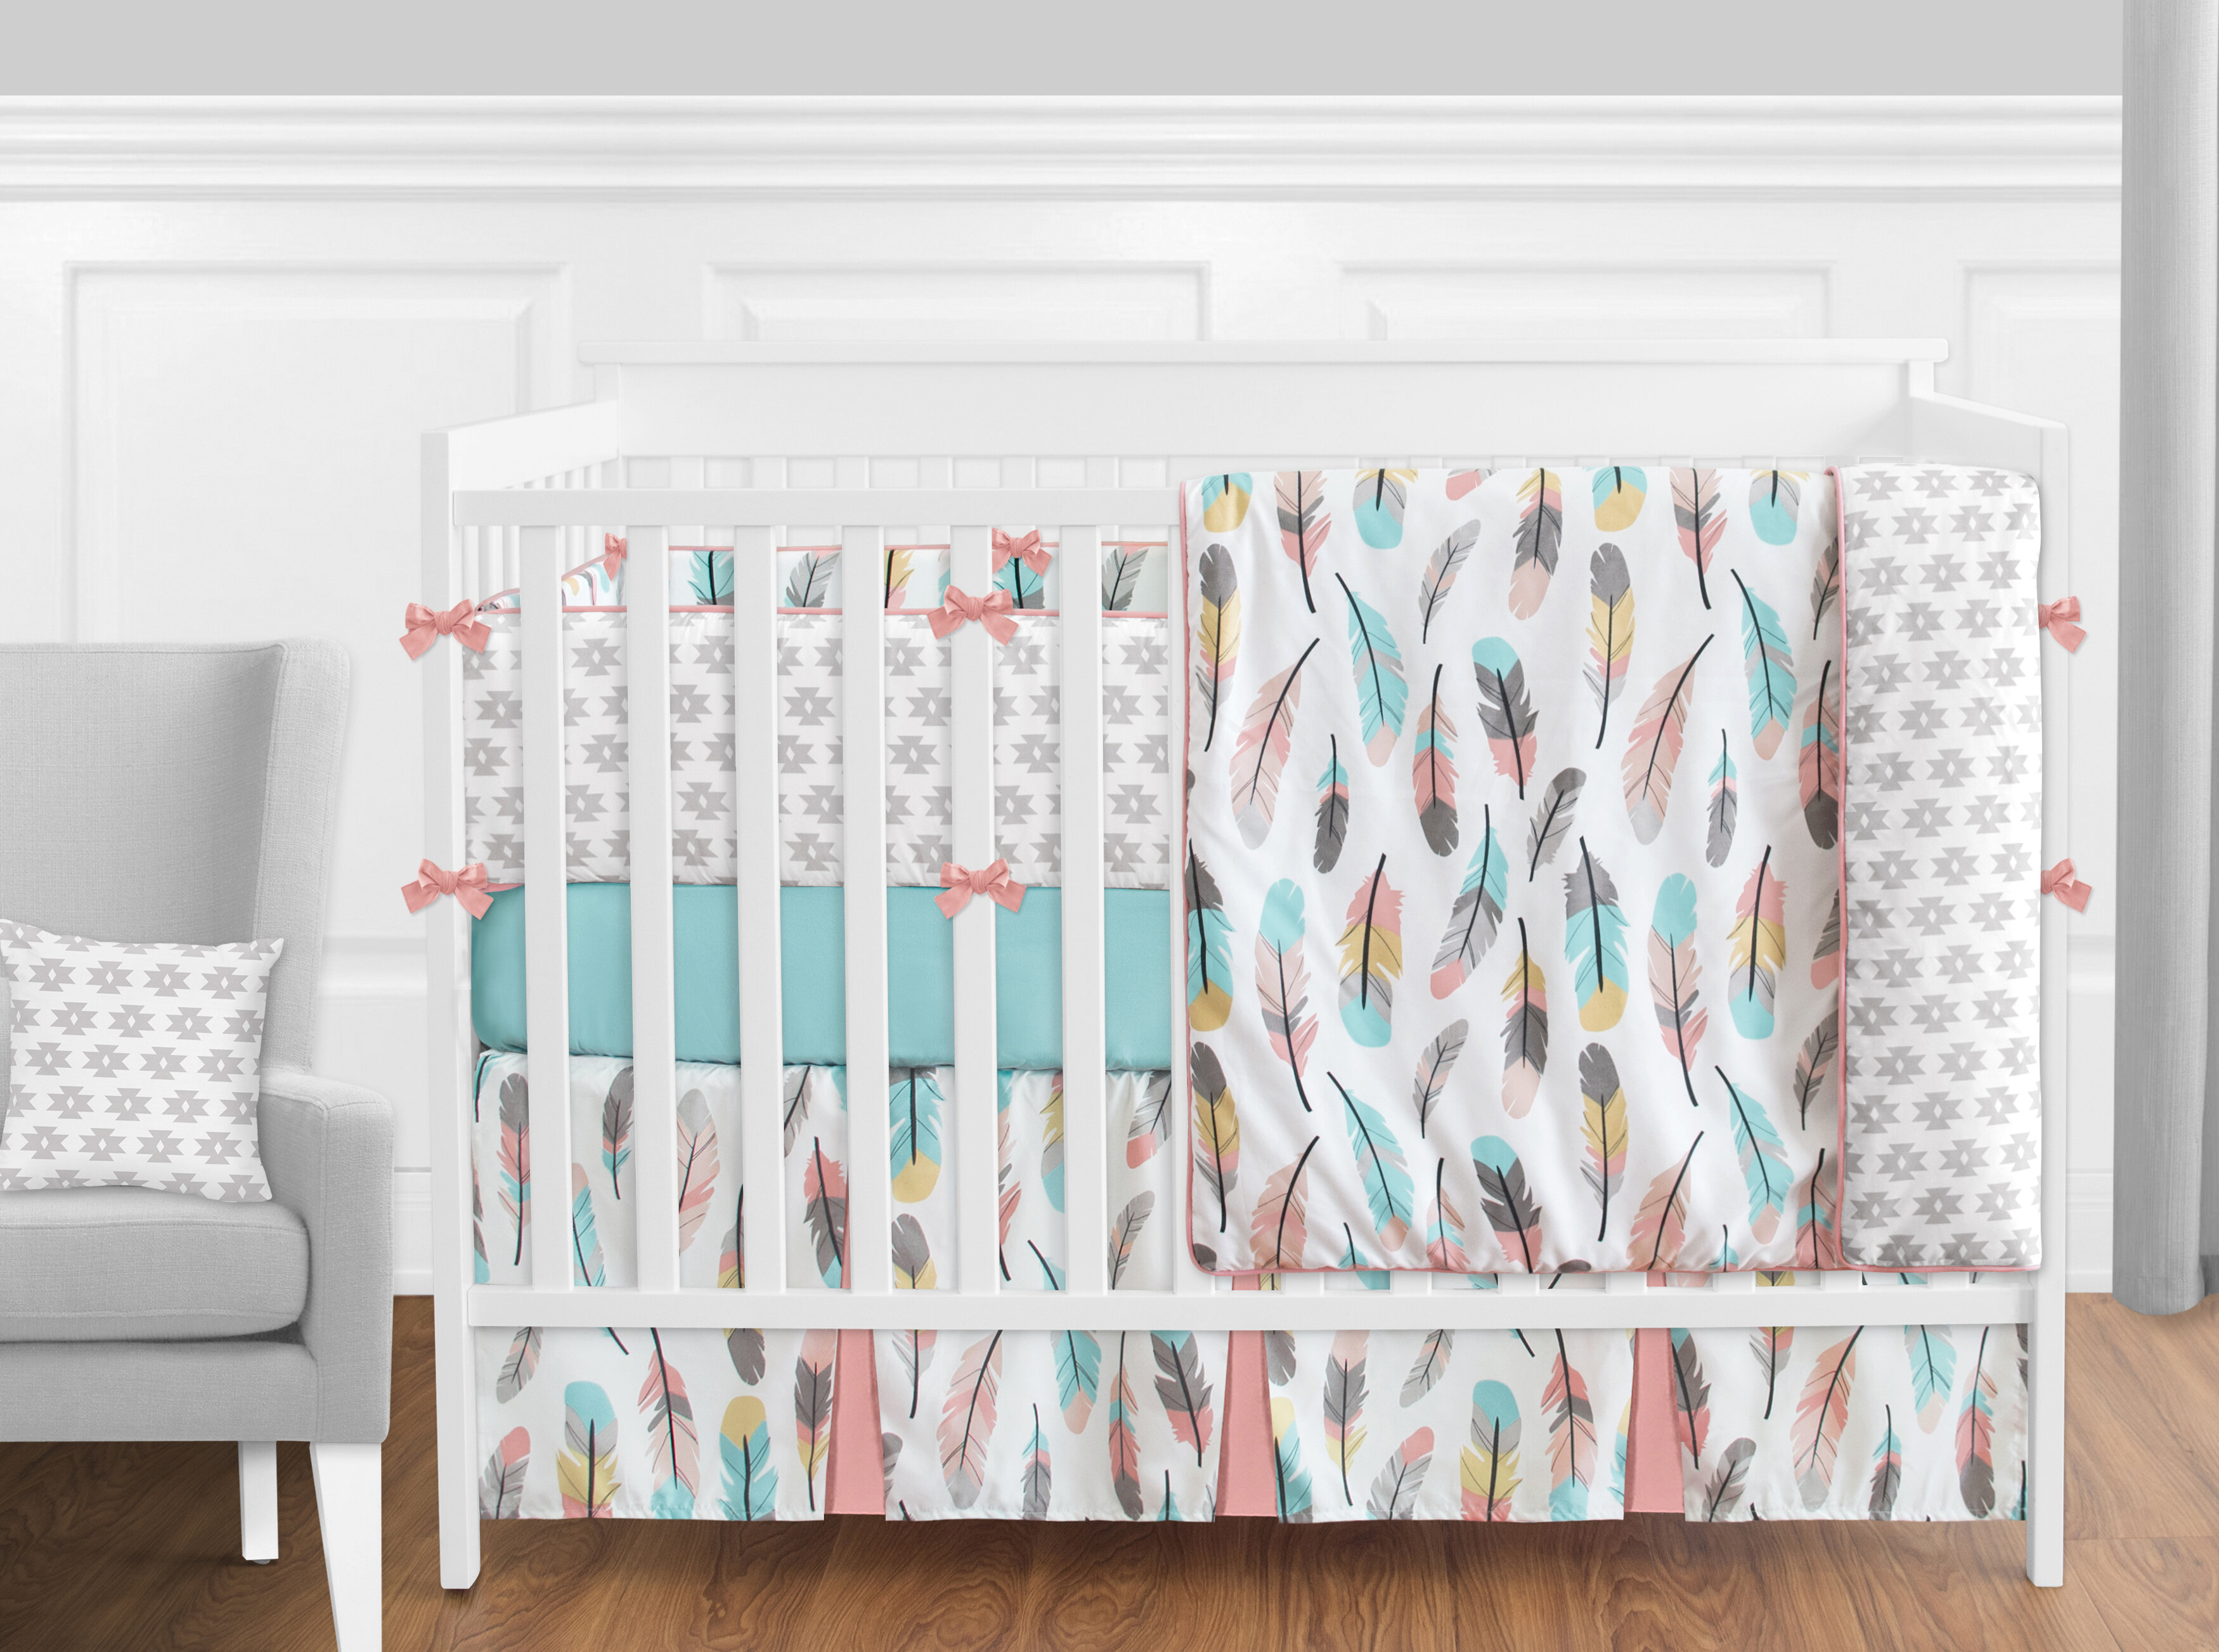 a collection grey red will rustic sweet baby by your designs the cribs for jojo bedding adventurer patch little rusticpatch plaid crib modernized set look black large country woodland itm create boy